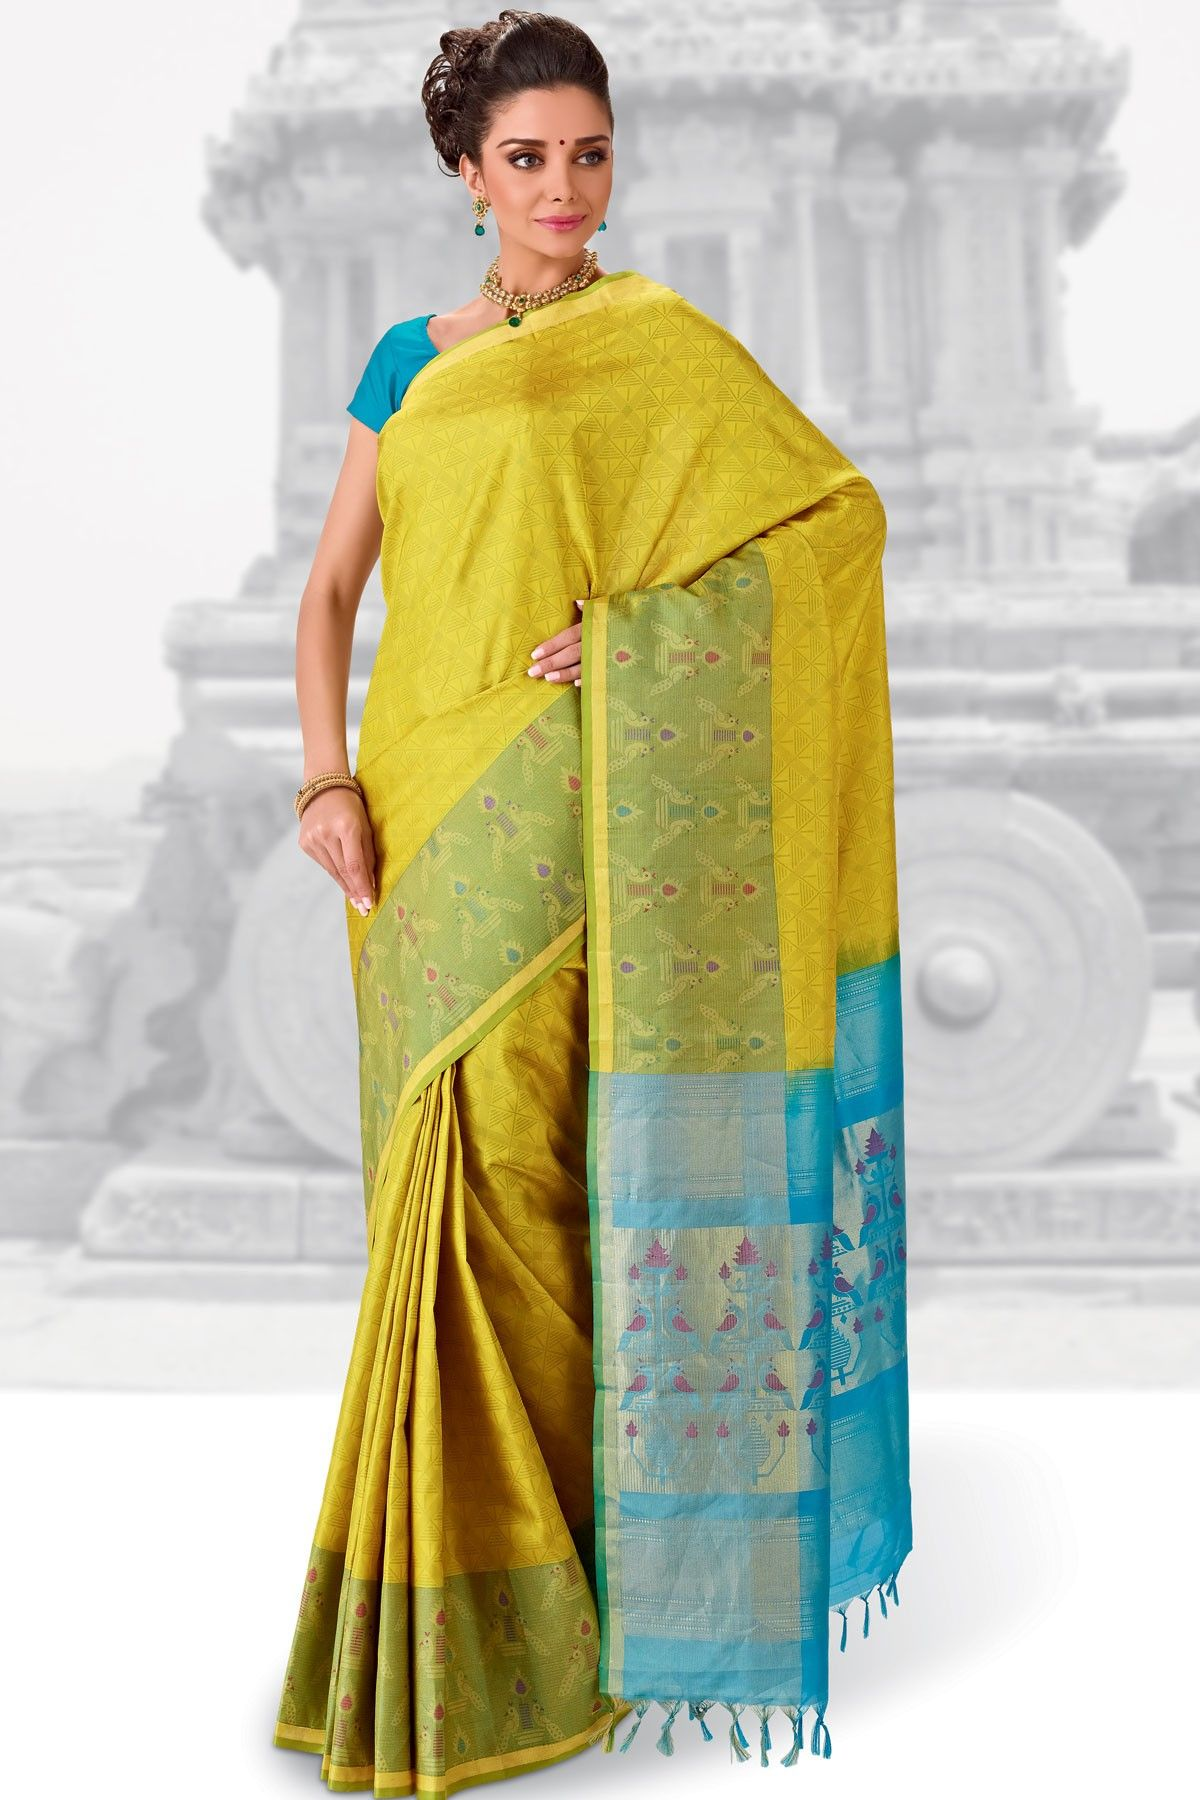 b9c4852398659 Gorgeous  Yellow weaved pure silk saree in green saree border   light  blue  weaved pallu along with blue plain blouse to give you a  pretty look.